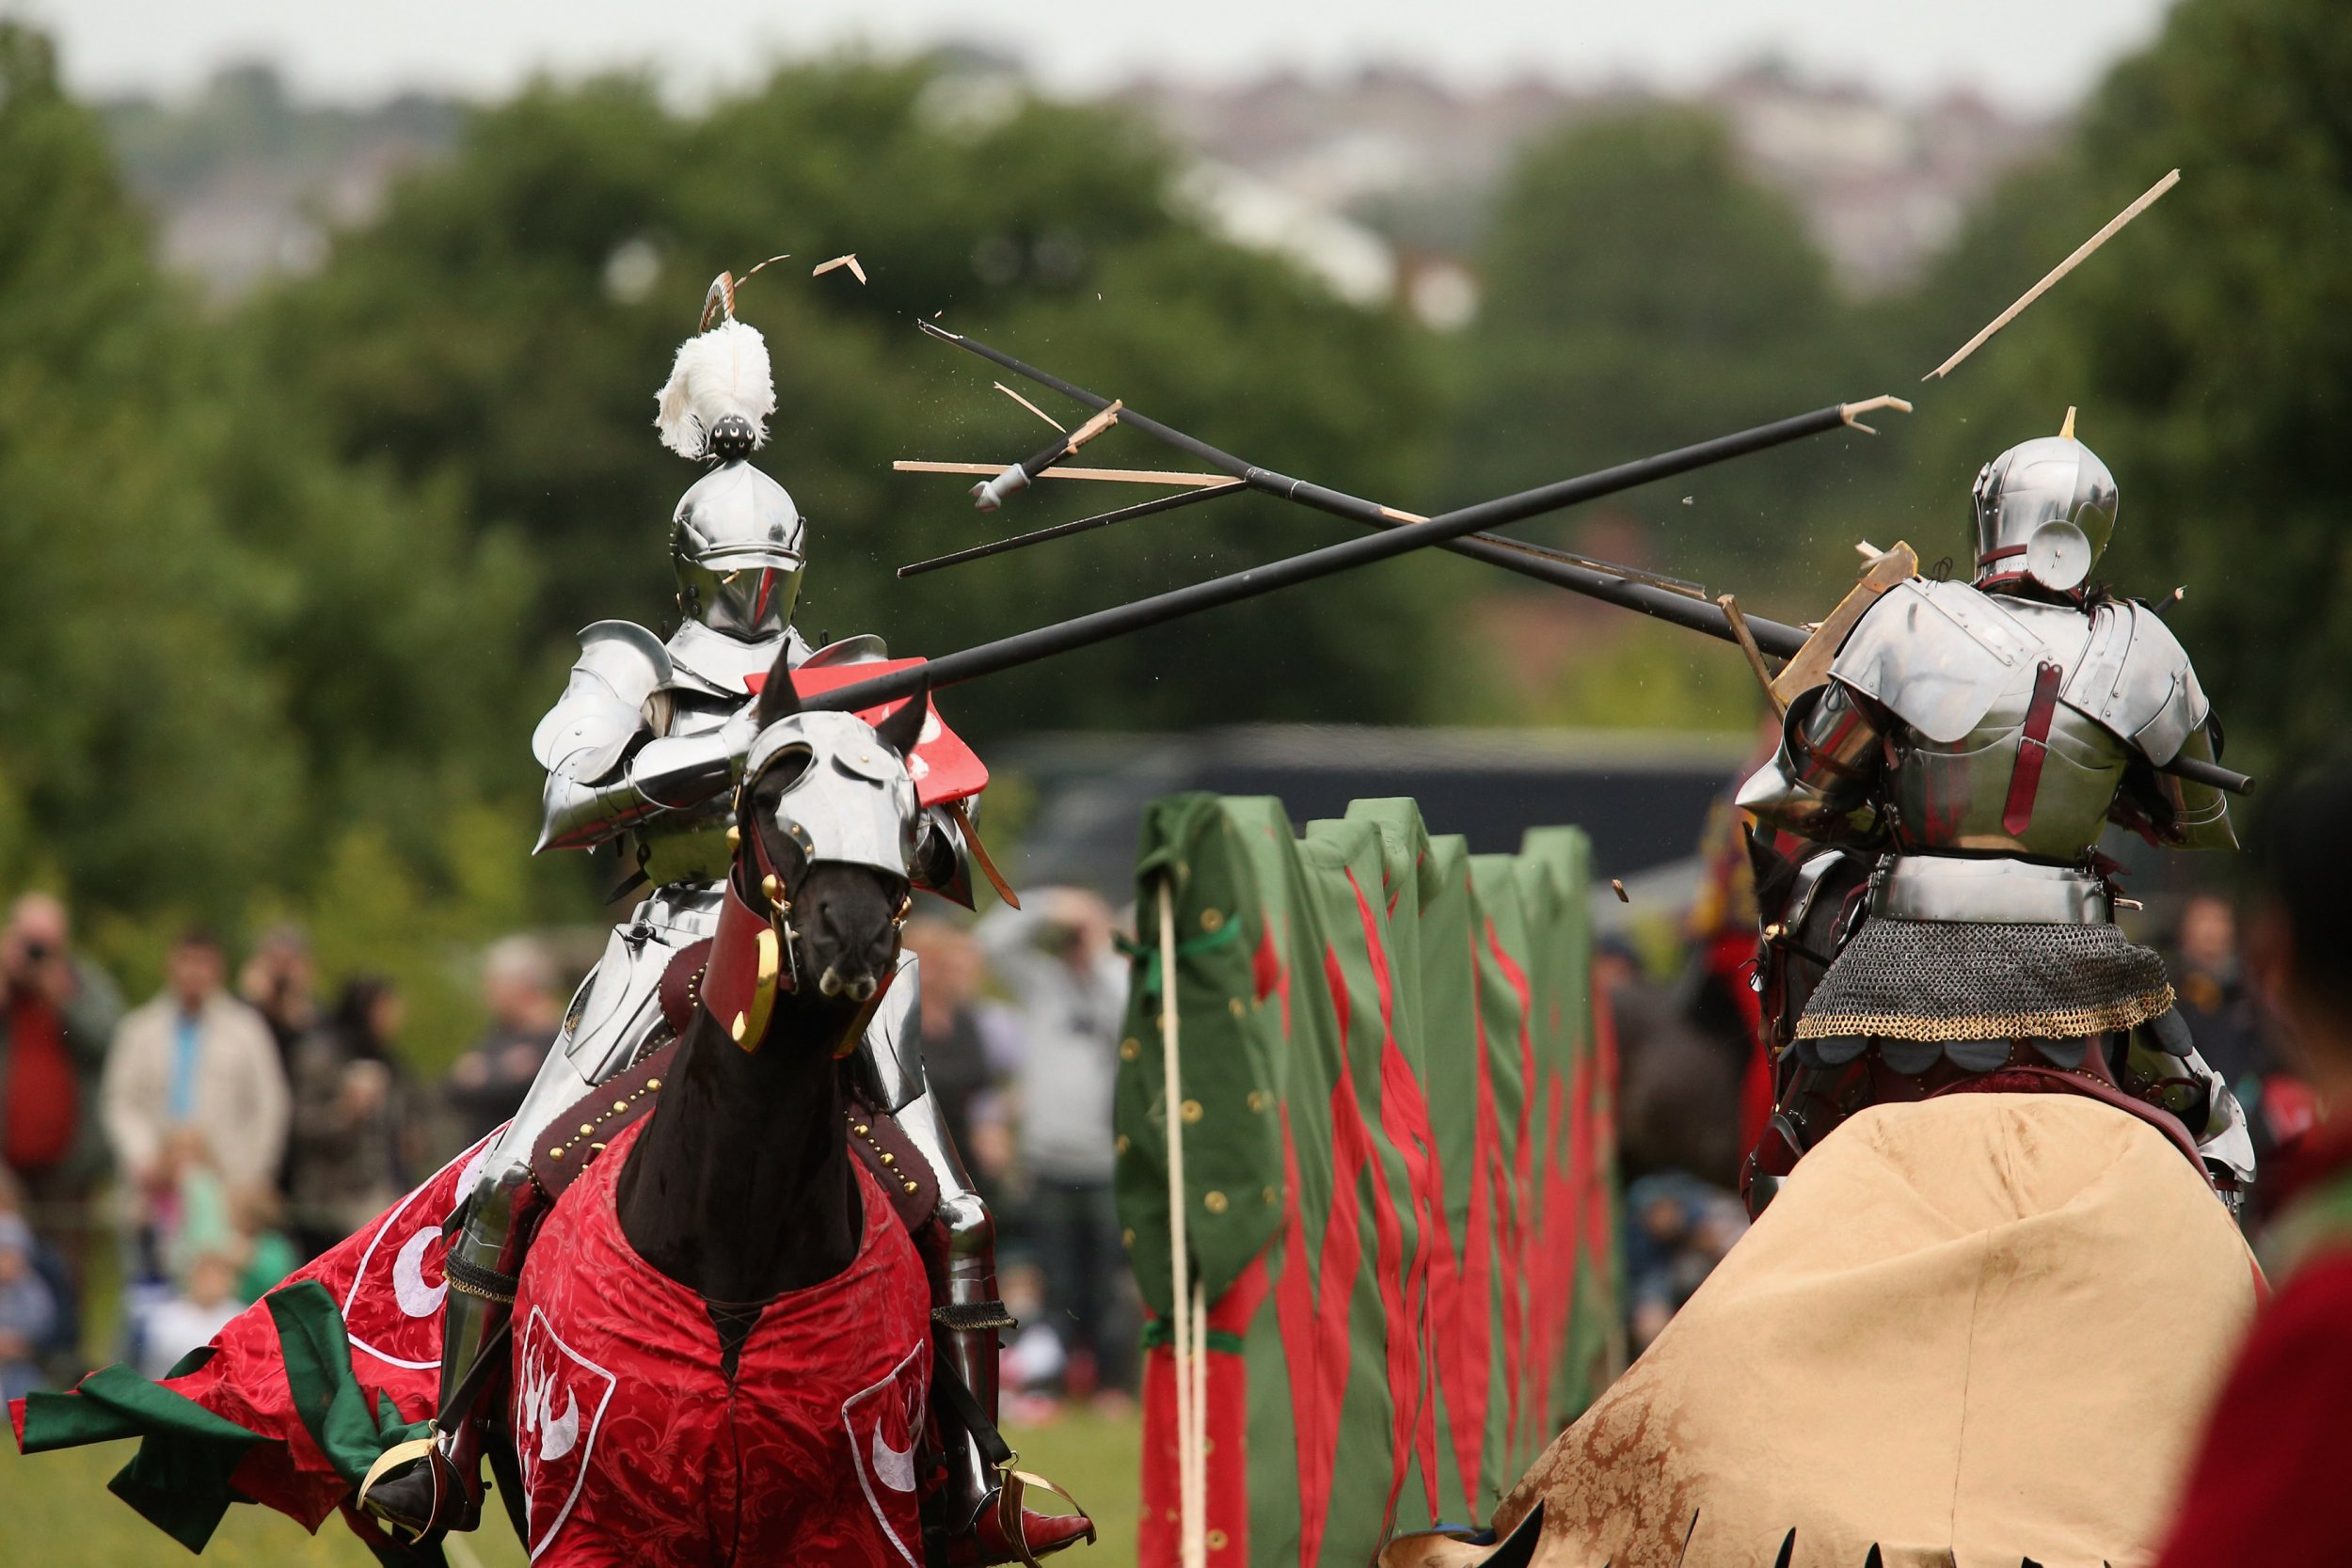 olympics could jousting really be included in the games